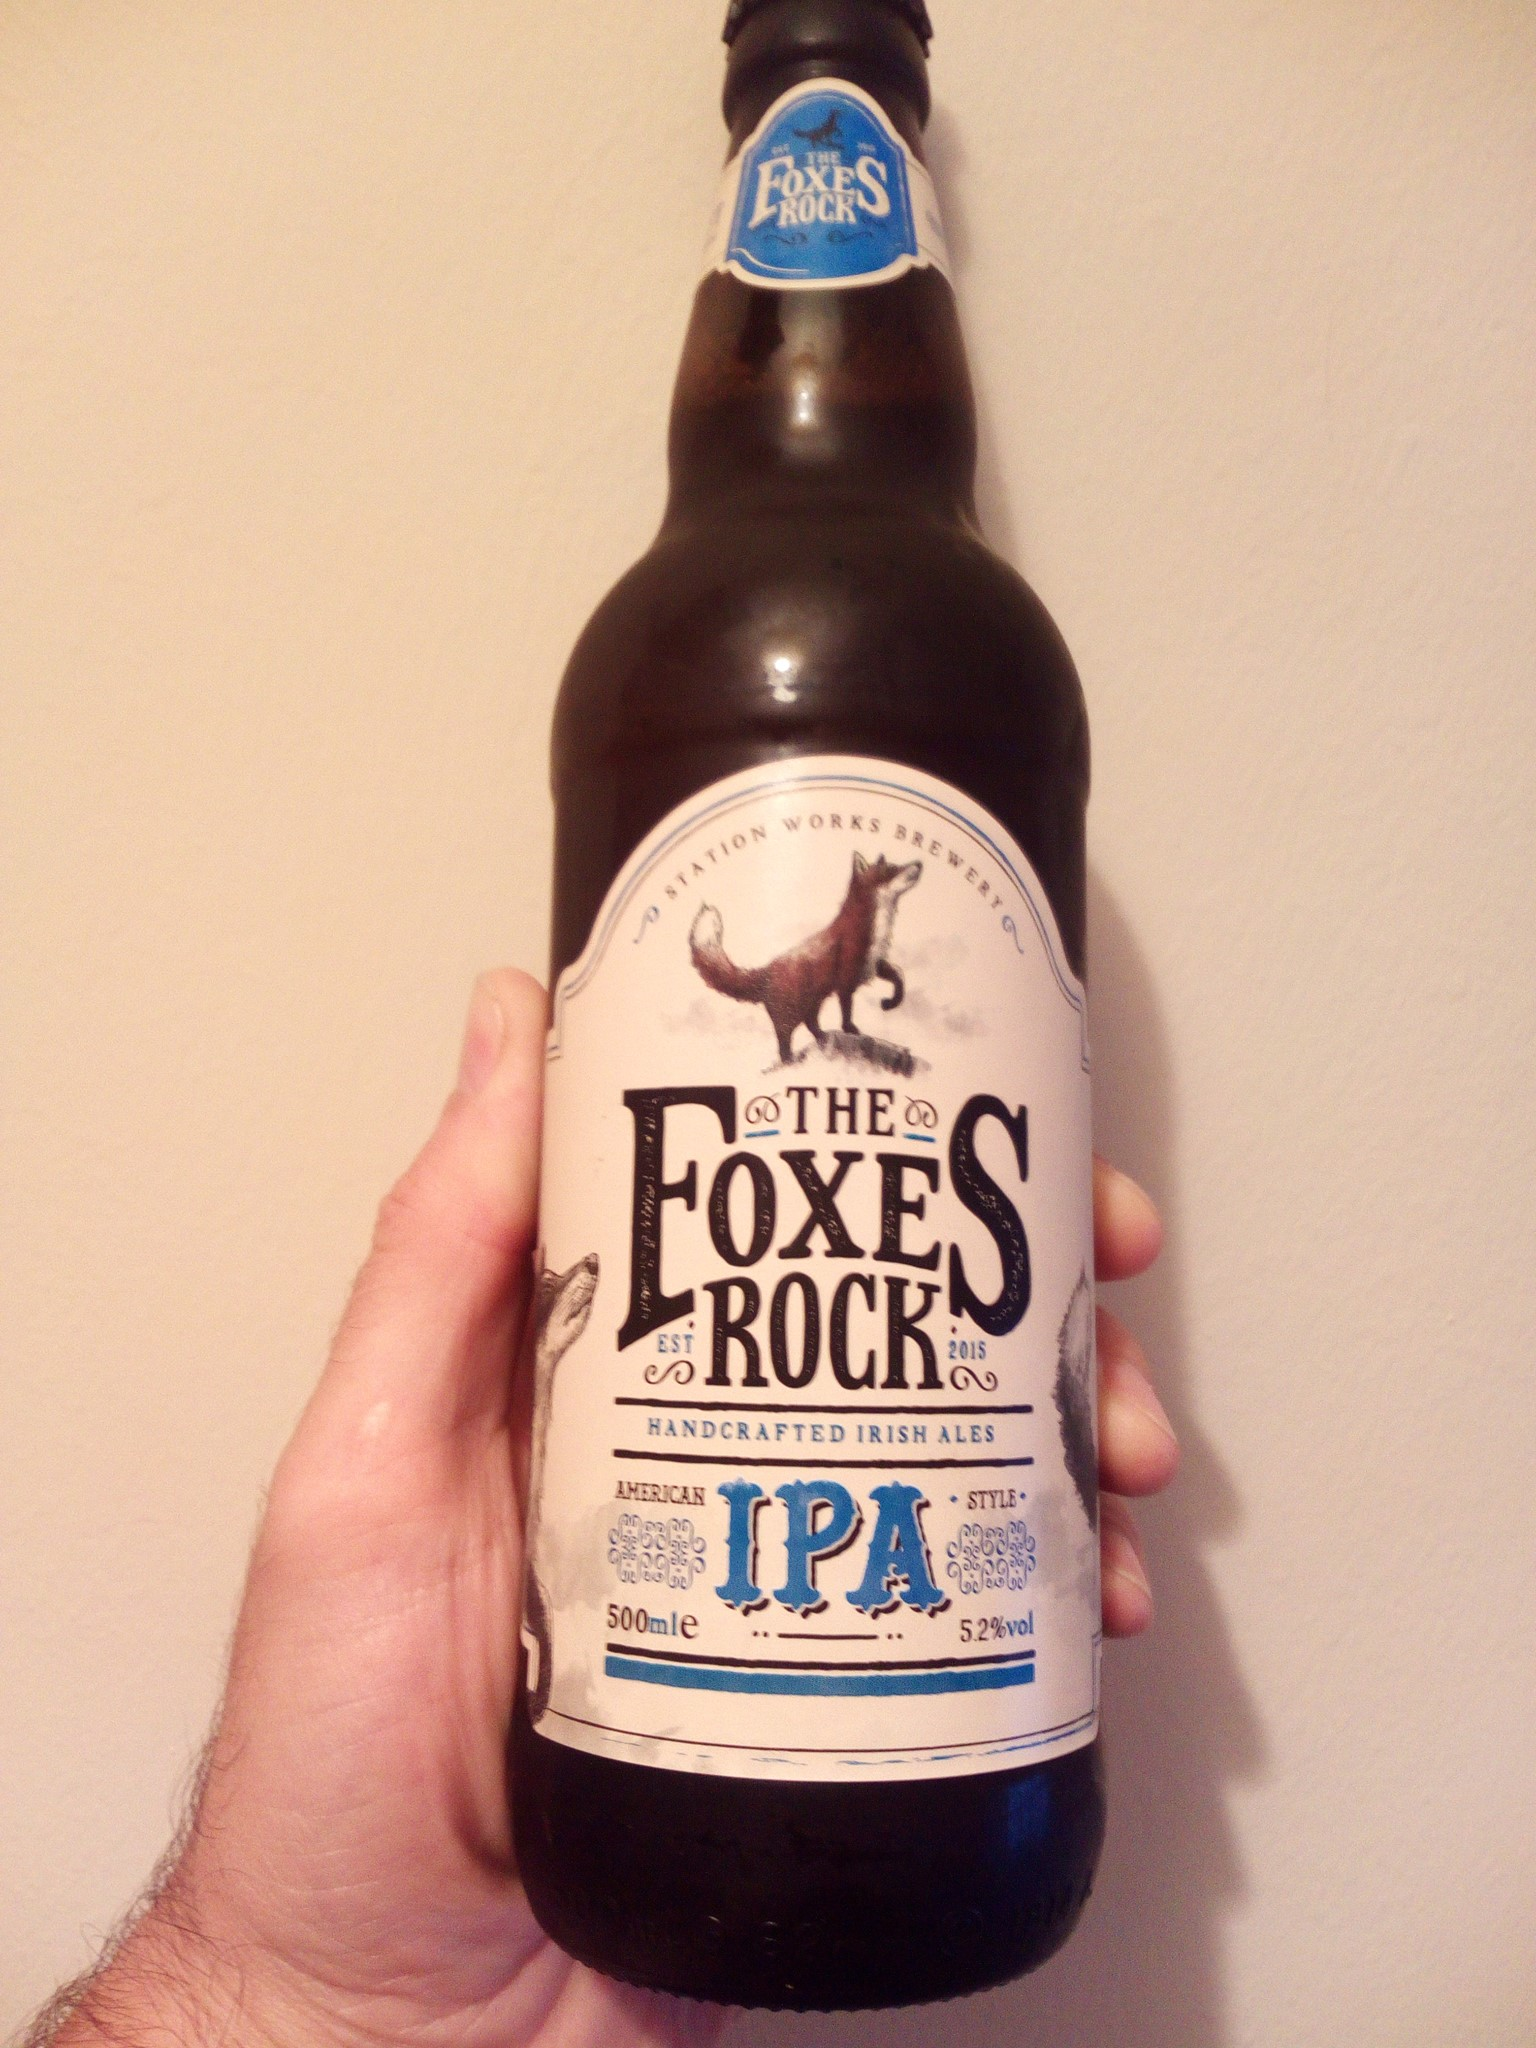 The Foxes Rock IPA